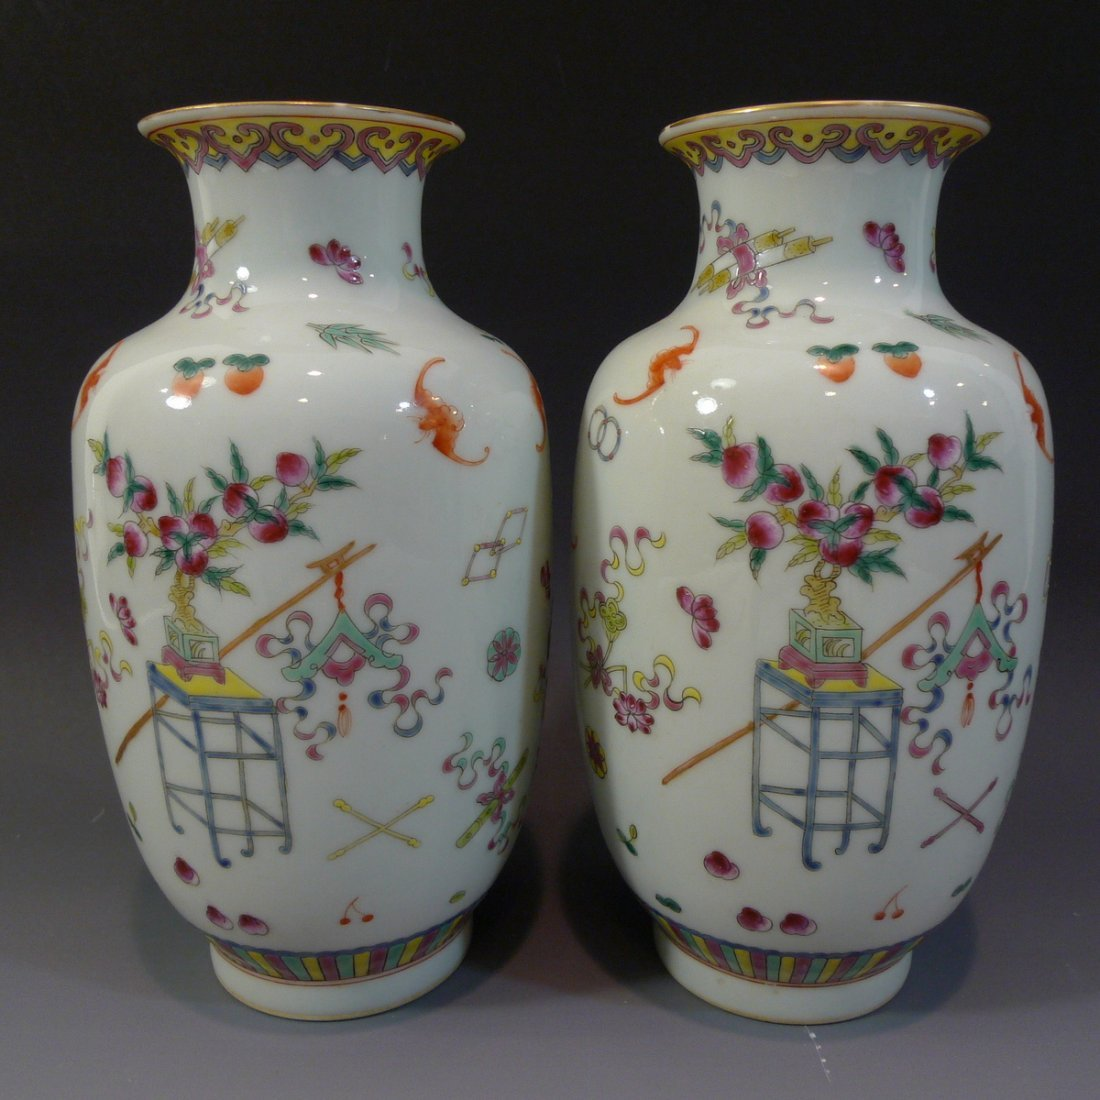 PAIR ANTIQUE CHINESE FAMILLE ROSE PORCELAIN VASE - 3